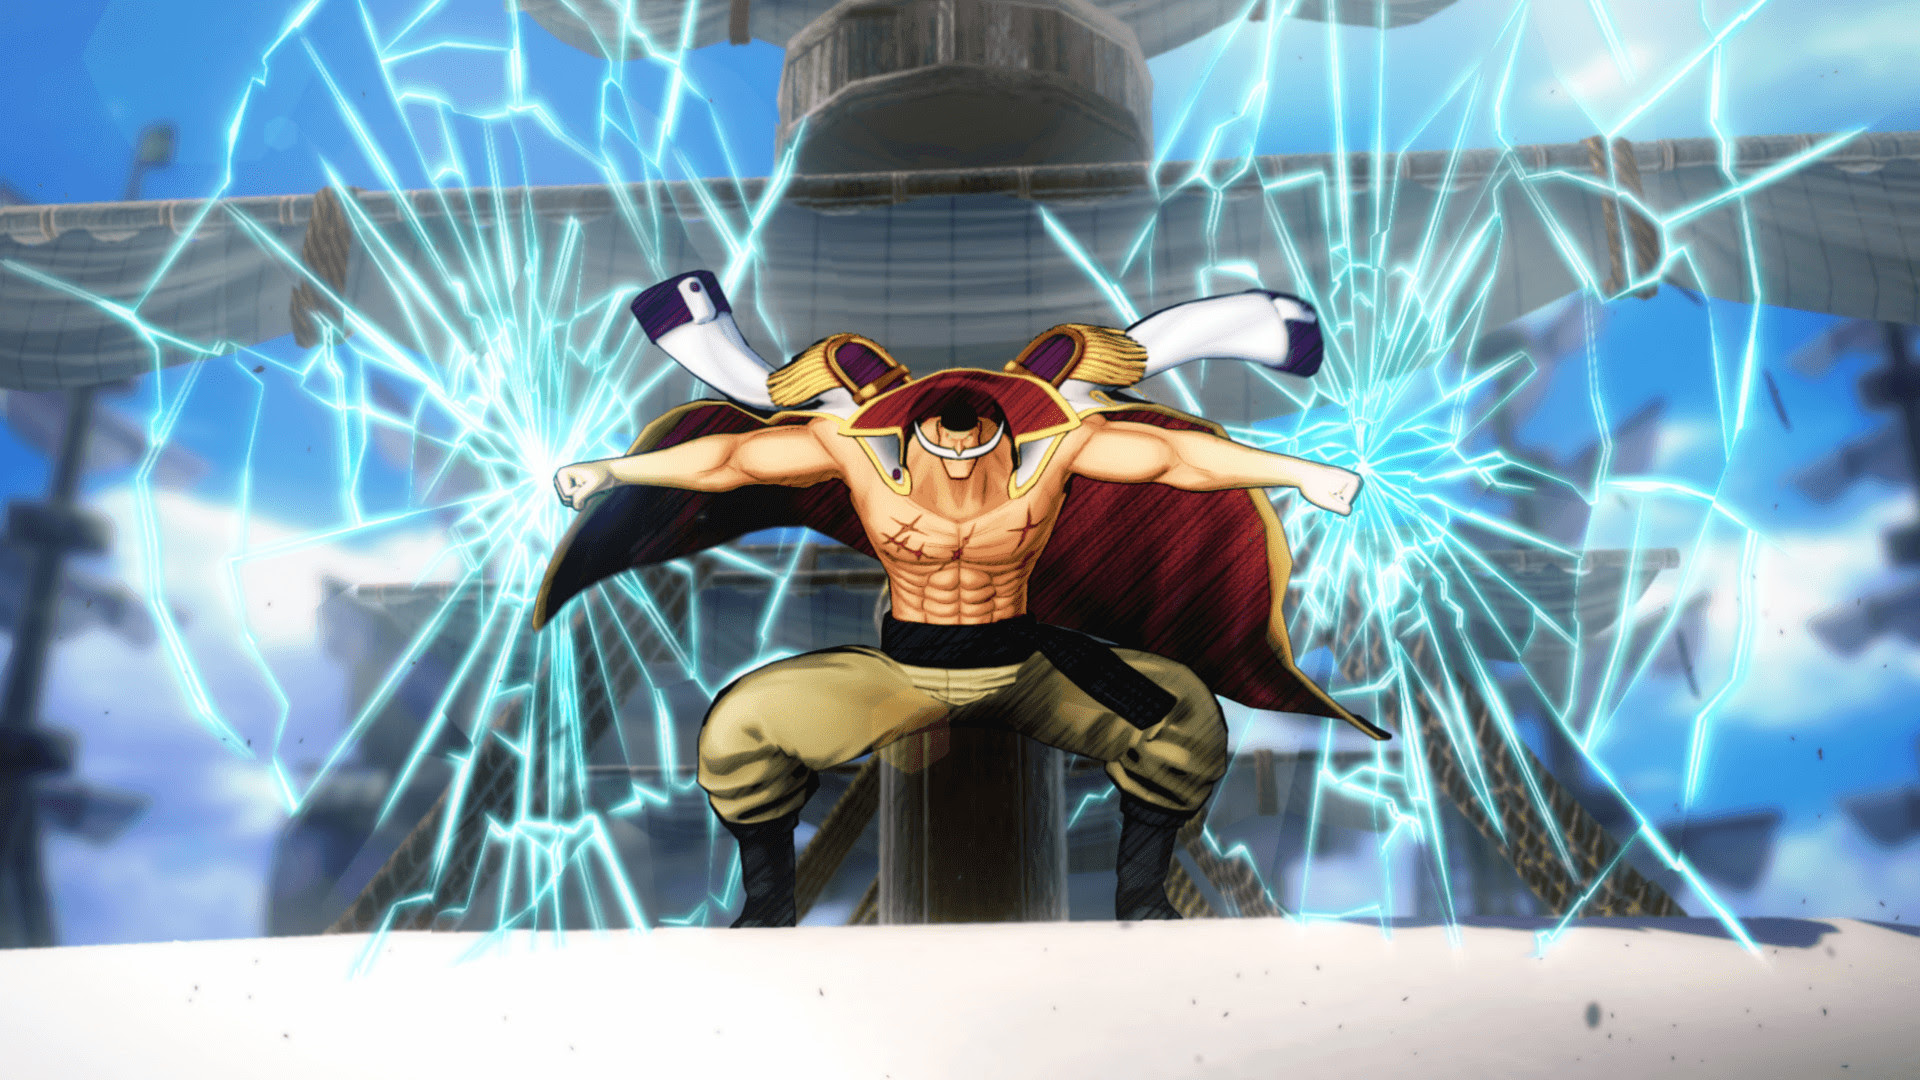 Whitebeard Wallpapers 67 Images